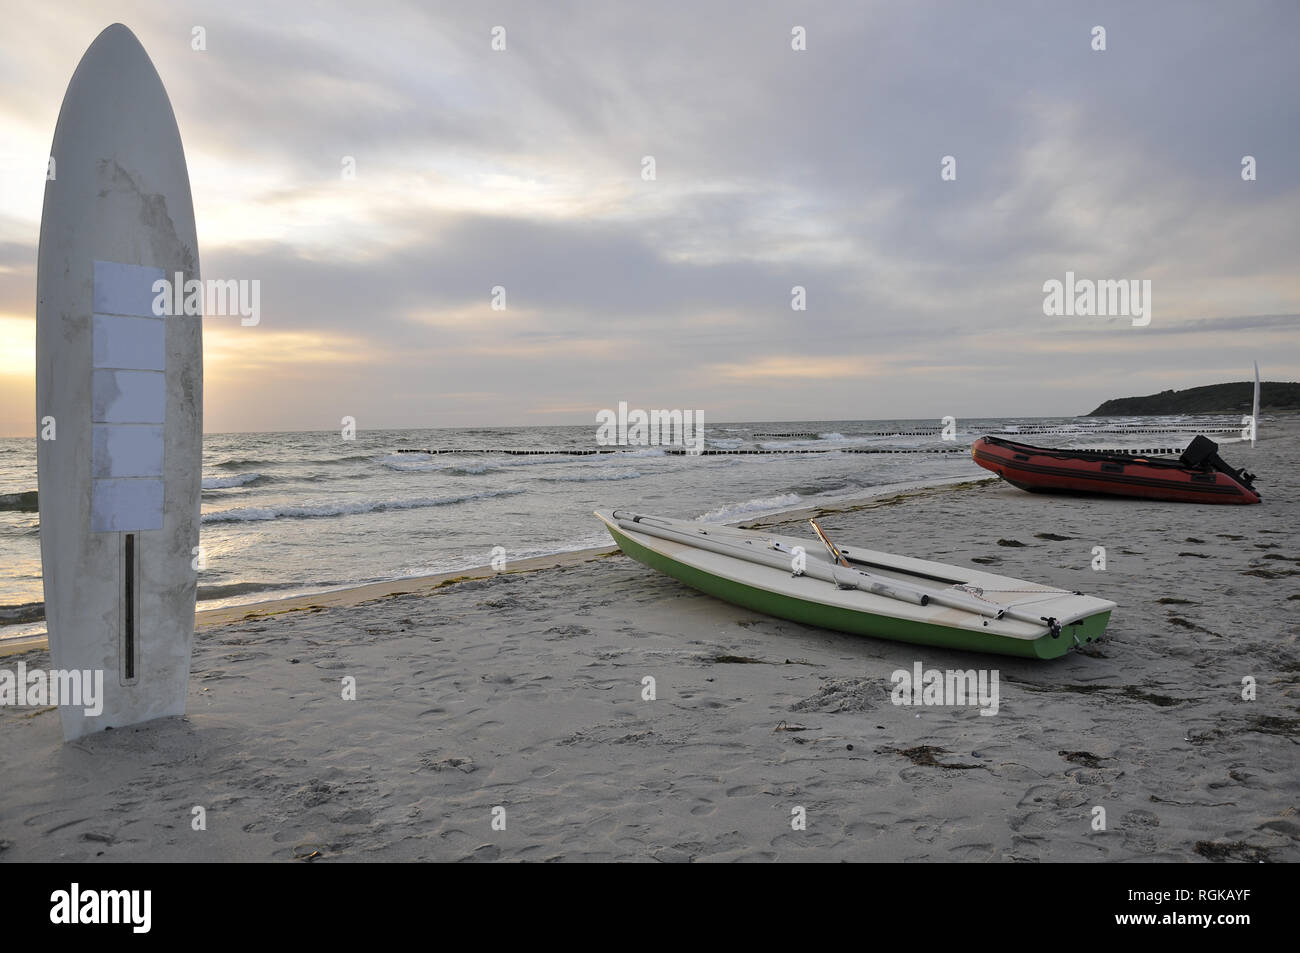 Boats and surfboard on the beach by jziprian - Stock Image